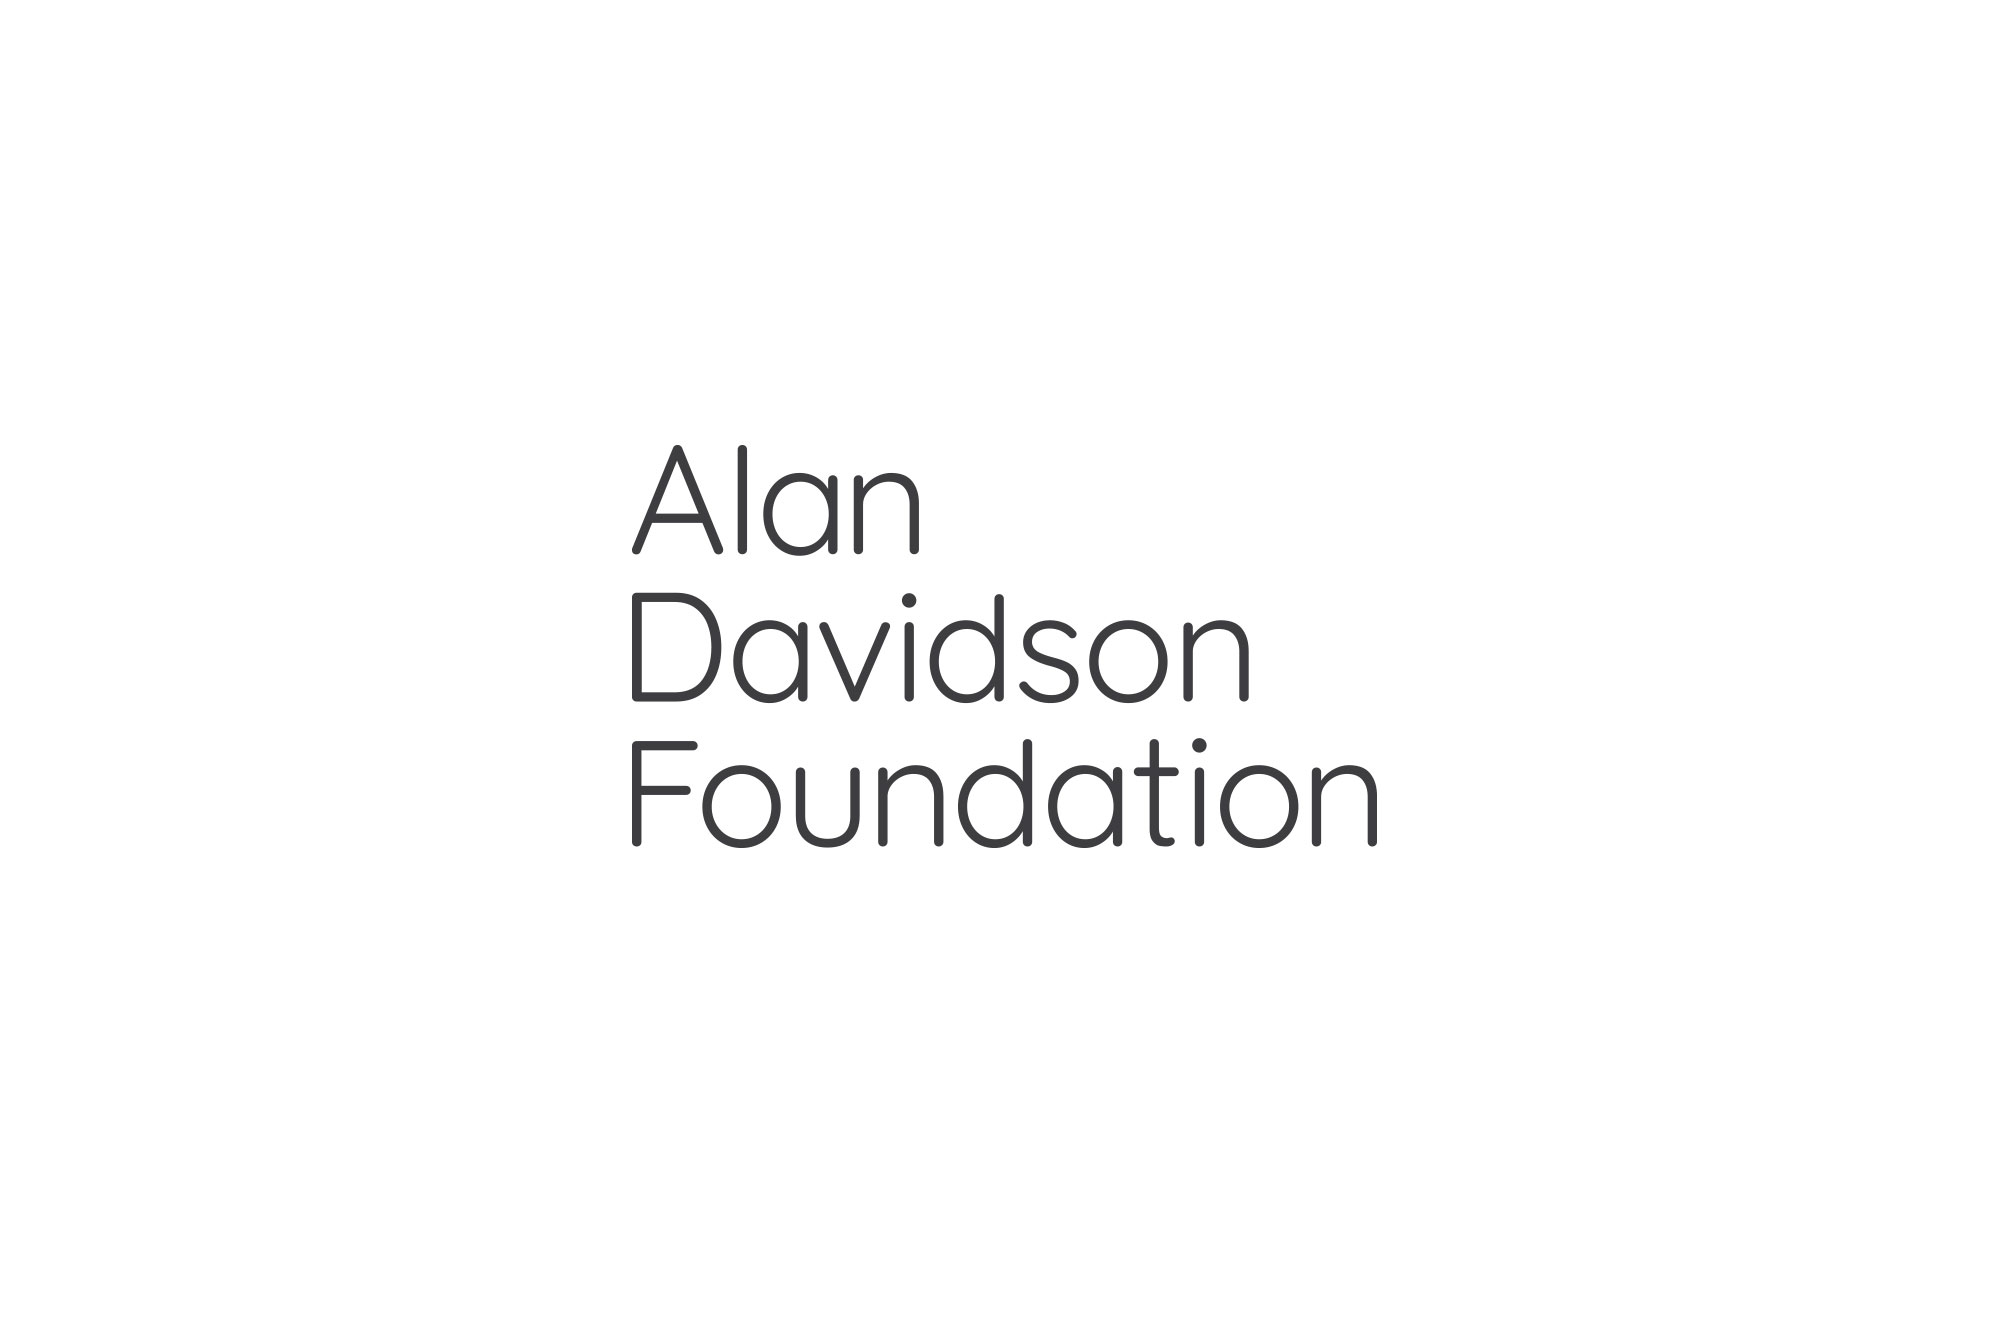 Alan-Davidson-Foundation-Wide-01